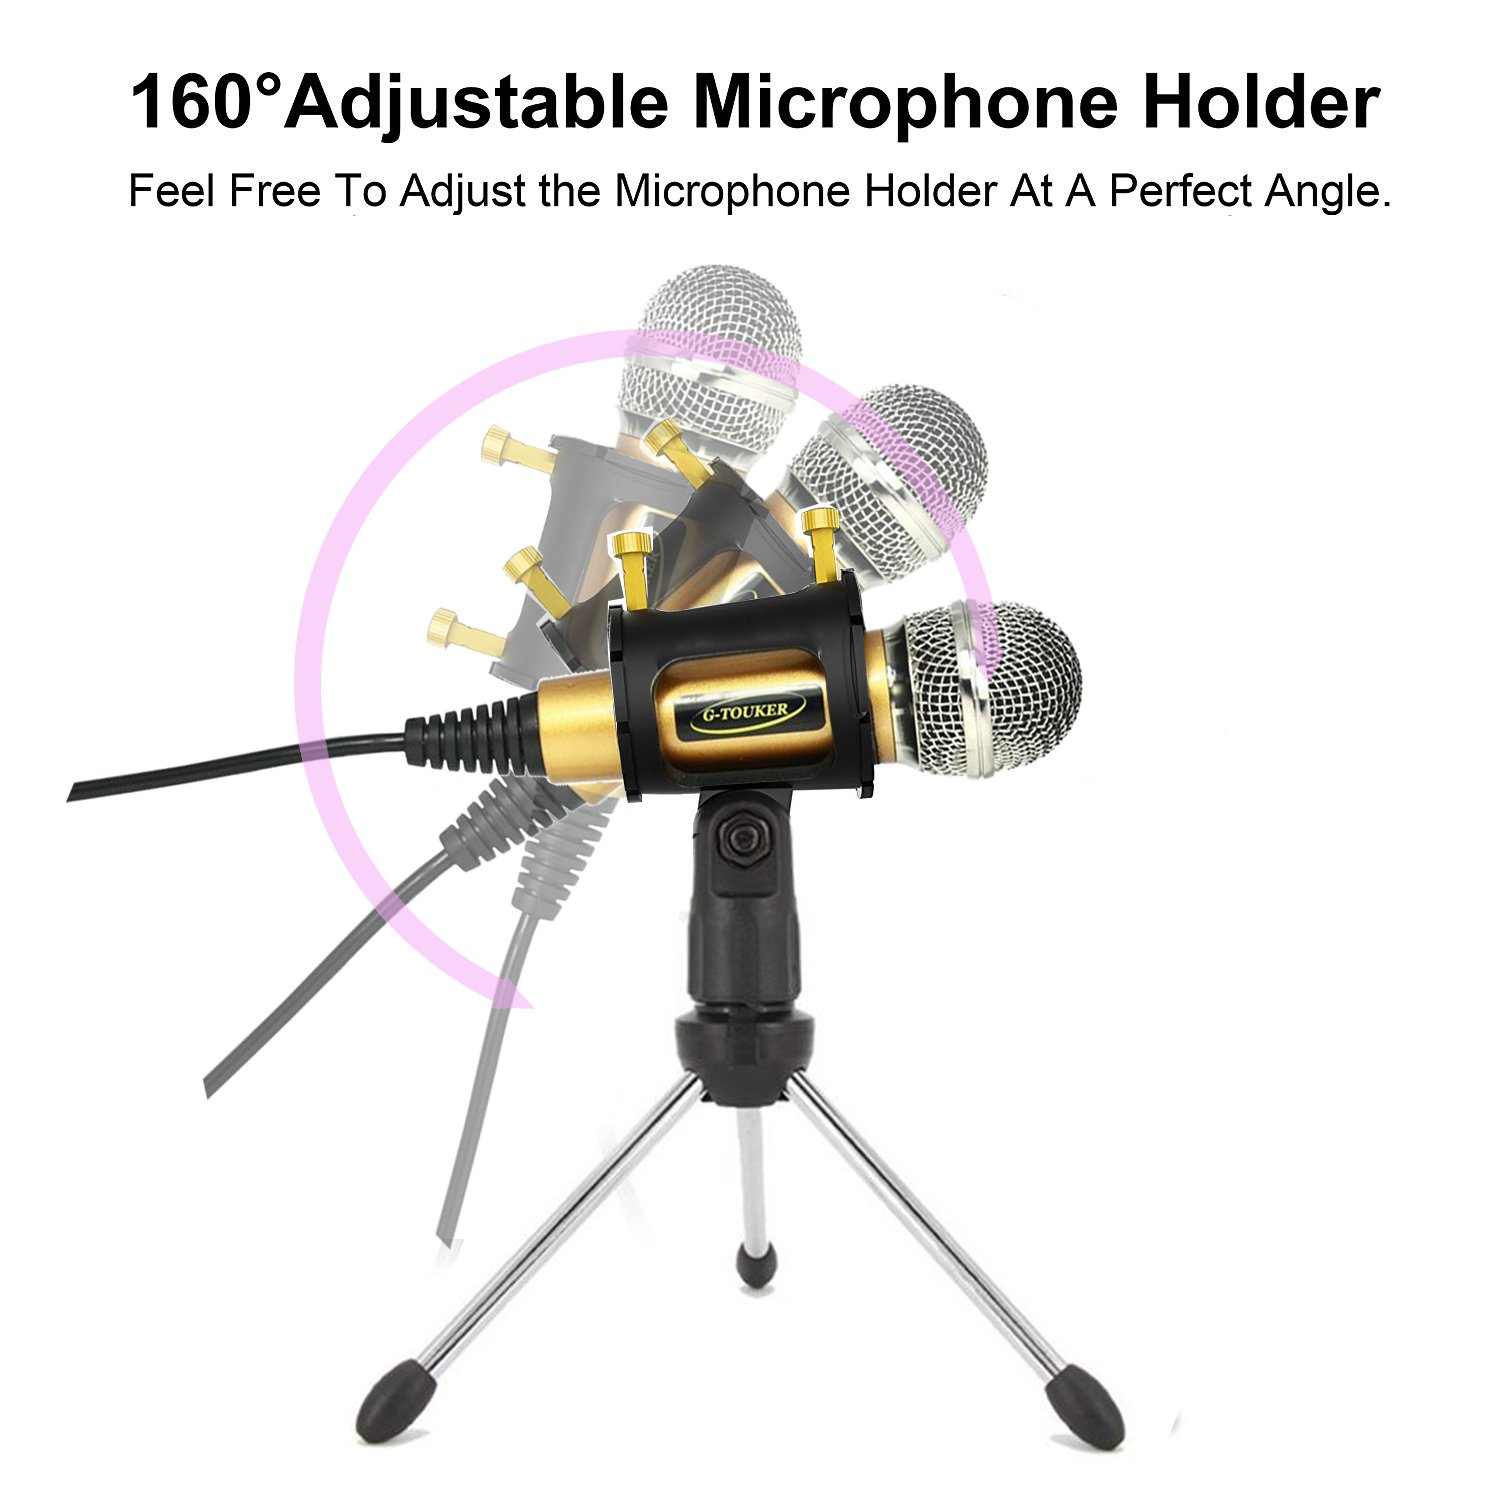 Professional Recroding Studio Microphone, 3.5mm microphone with stand, microphone for iphone andrioid mobile phone,ipads,tablet,pc,laptop computer. mic recording music, video, gaming, vocals (MC6G) by TKGOU (Image #3)